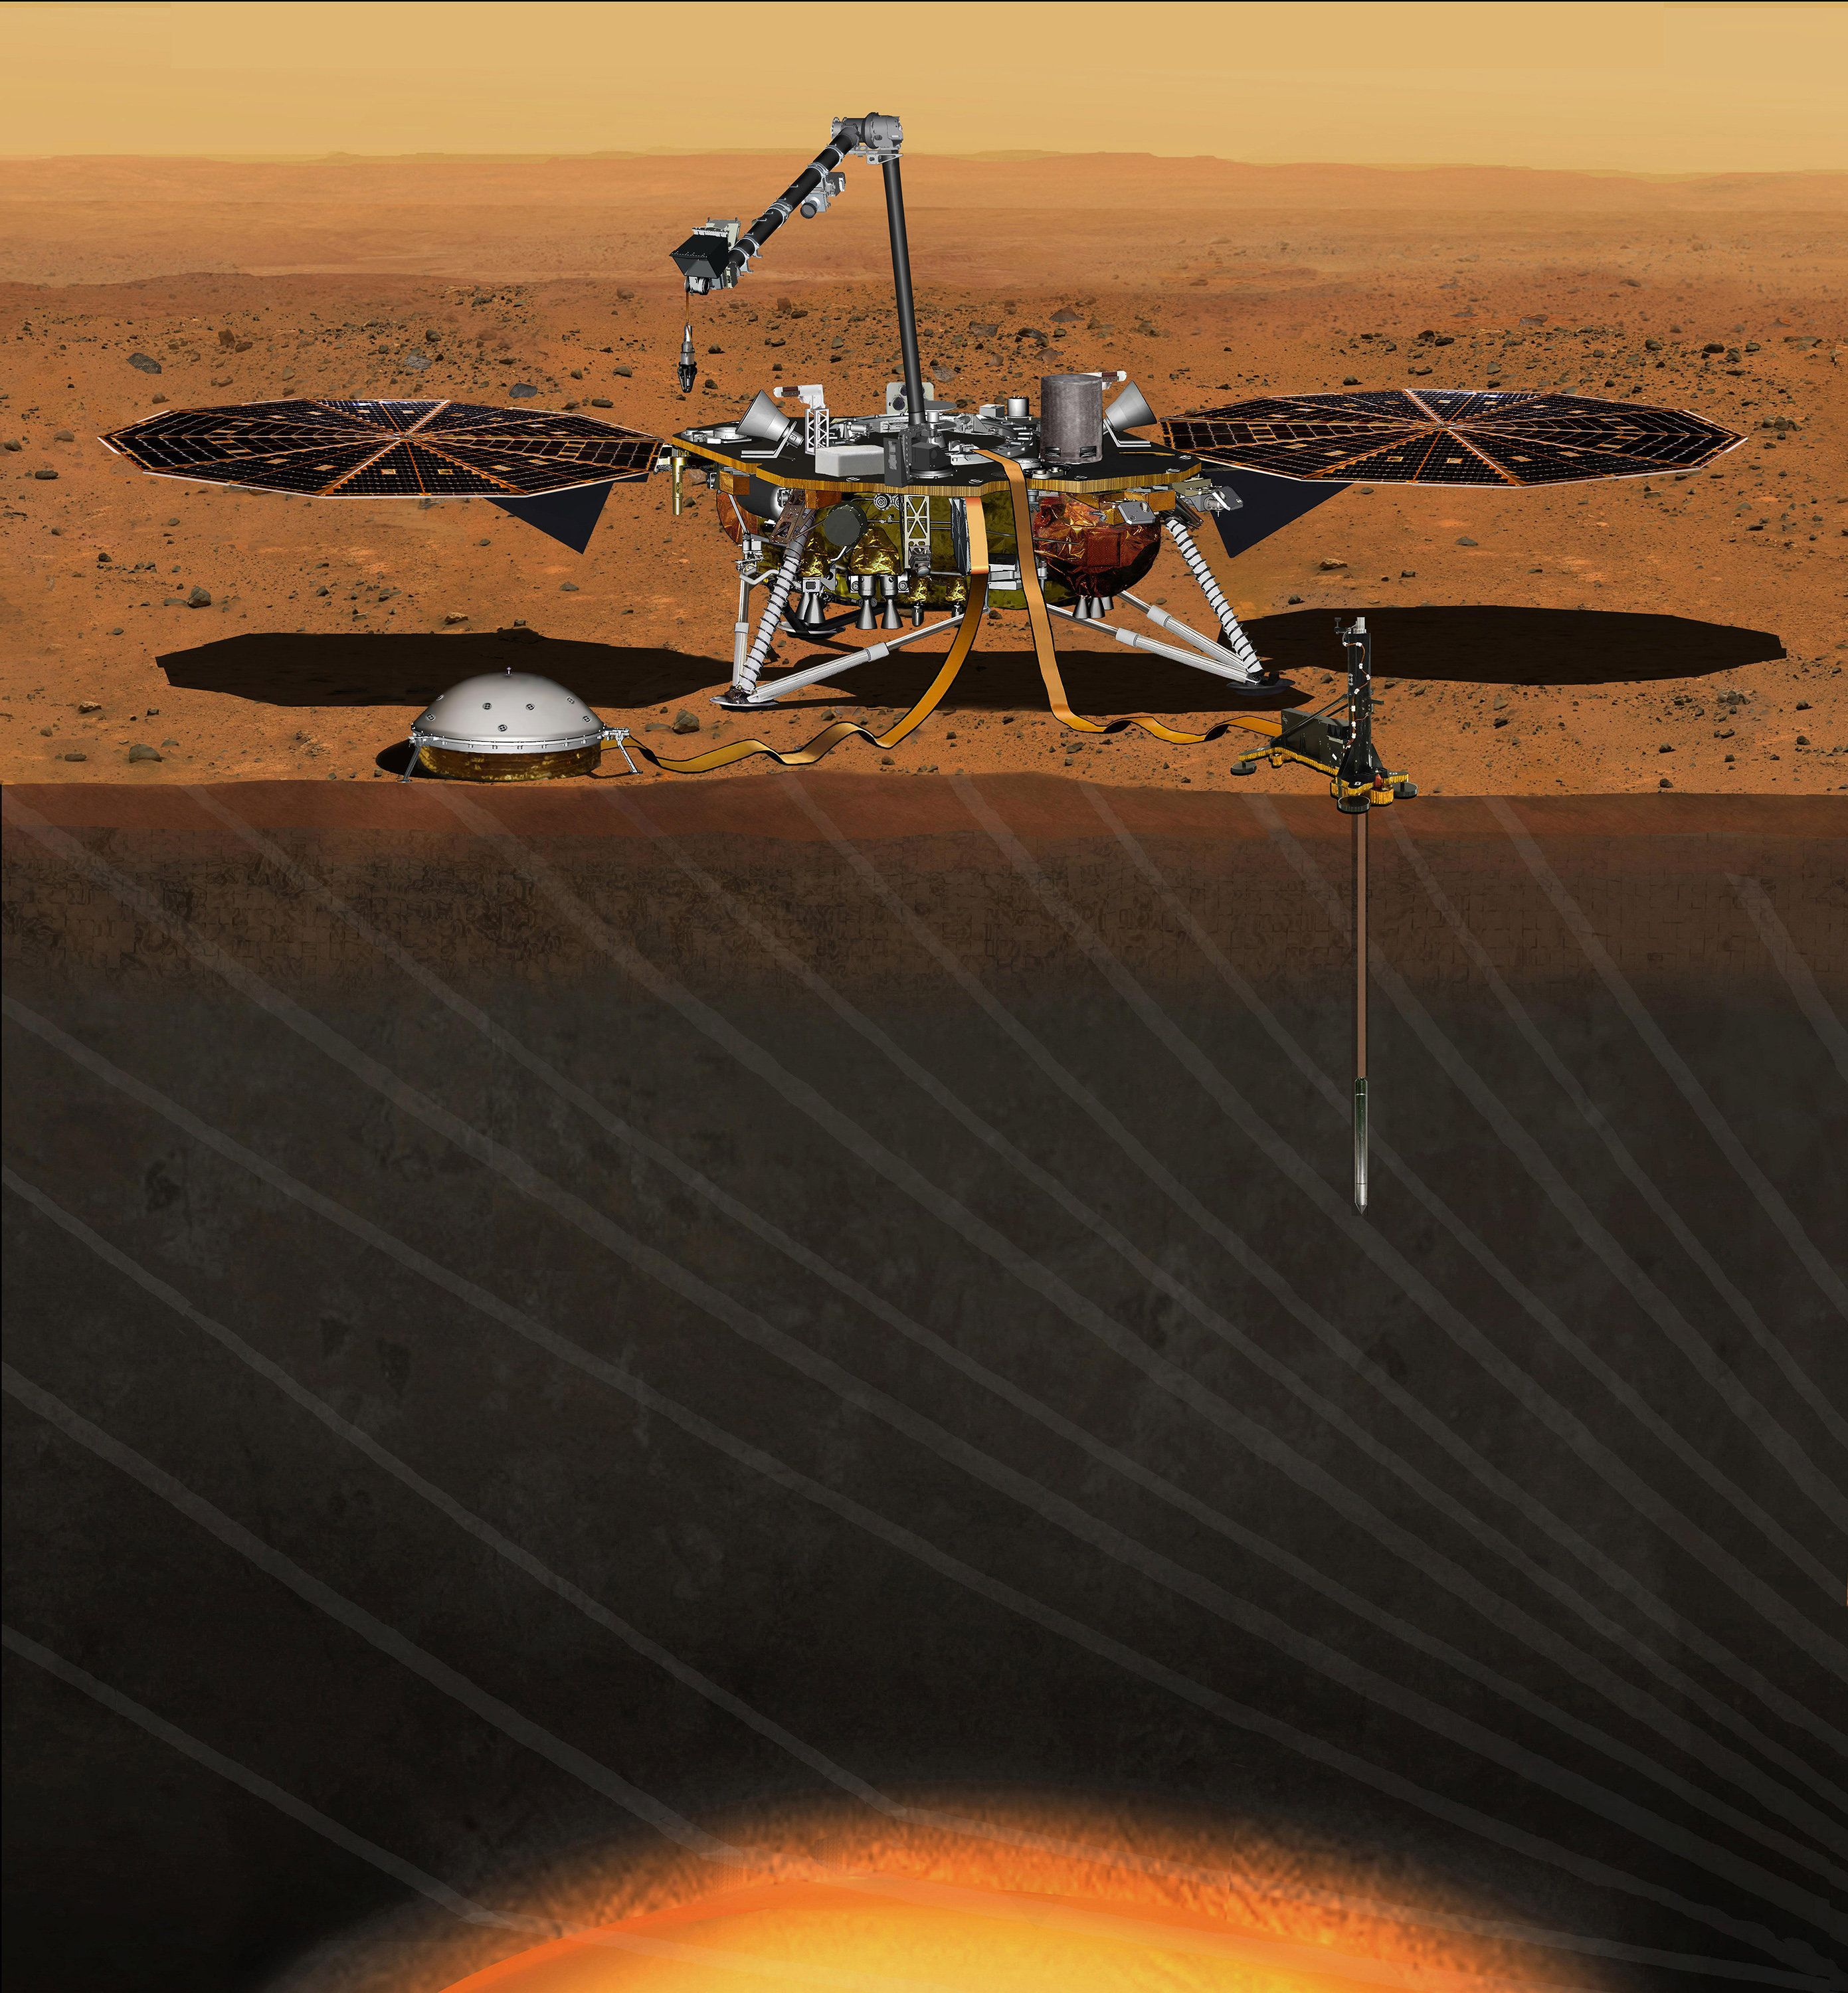 An artist's rendering depicts the InSight lander studying the interior of Mars.